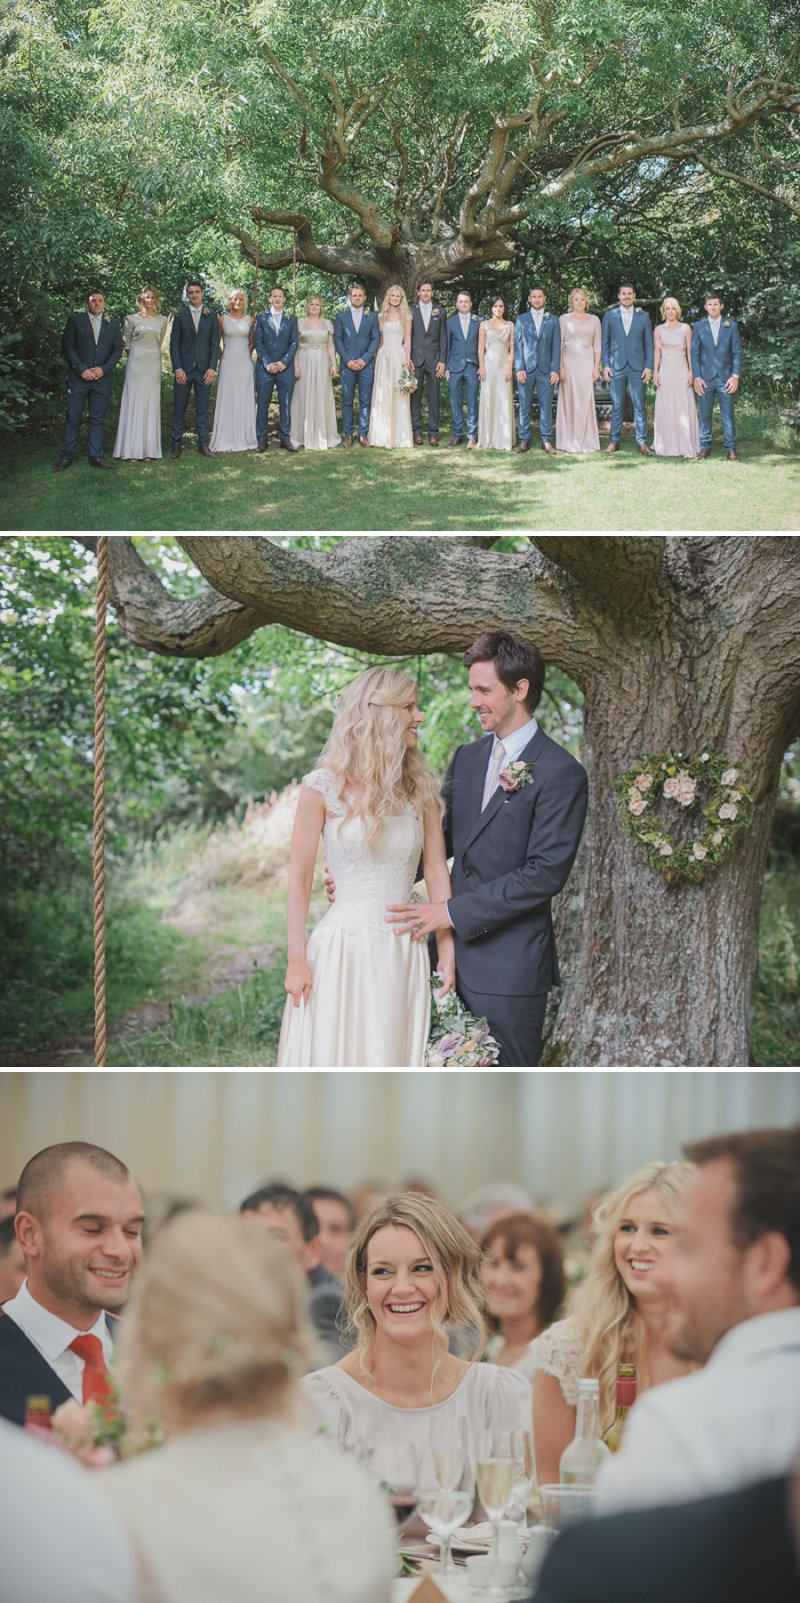 An Ethereal Summer Woodland Wedding At Hilton Court Gardens In Pembrokeshire Wales With A Silk Stephanie Allin Dress And An Amnesia Rose Bouquet Photographed By O&C Photography._0011